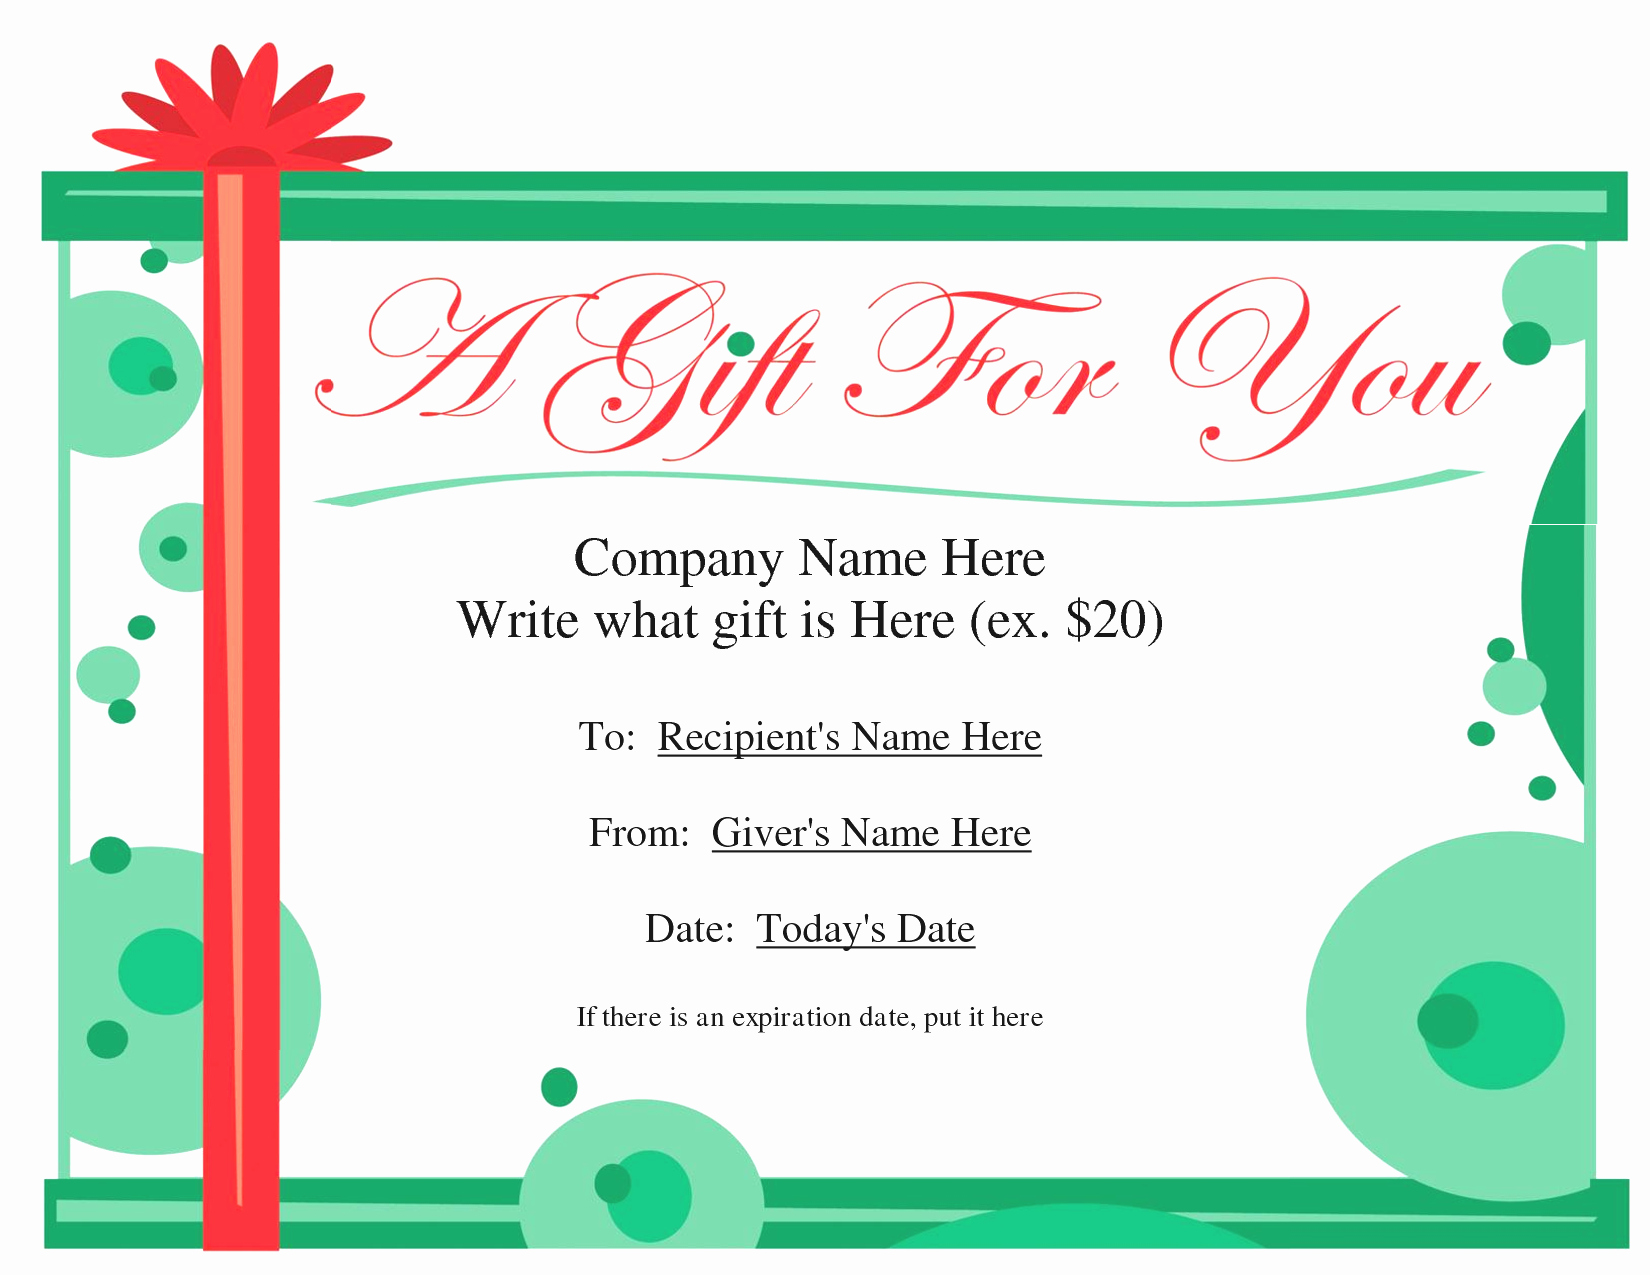 Microsoft Word Gift Card Template Best Of Microsoft Fice Gift Certificate Template